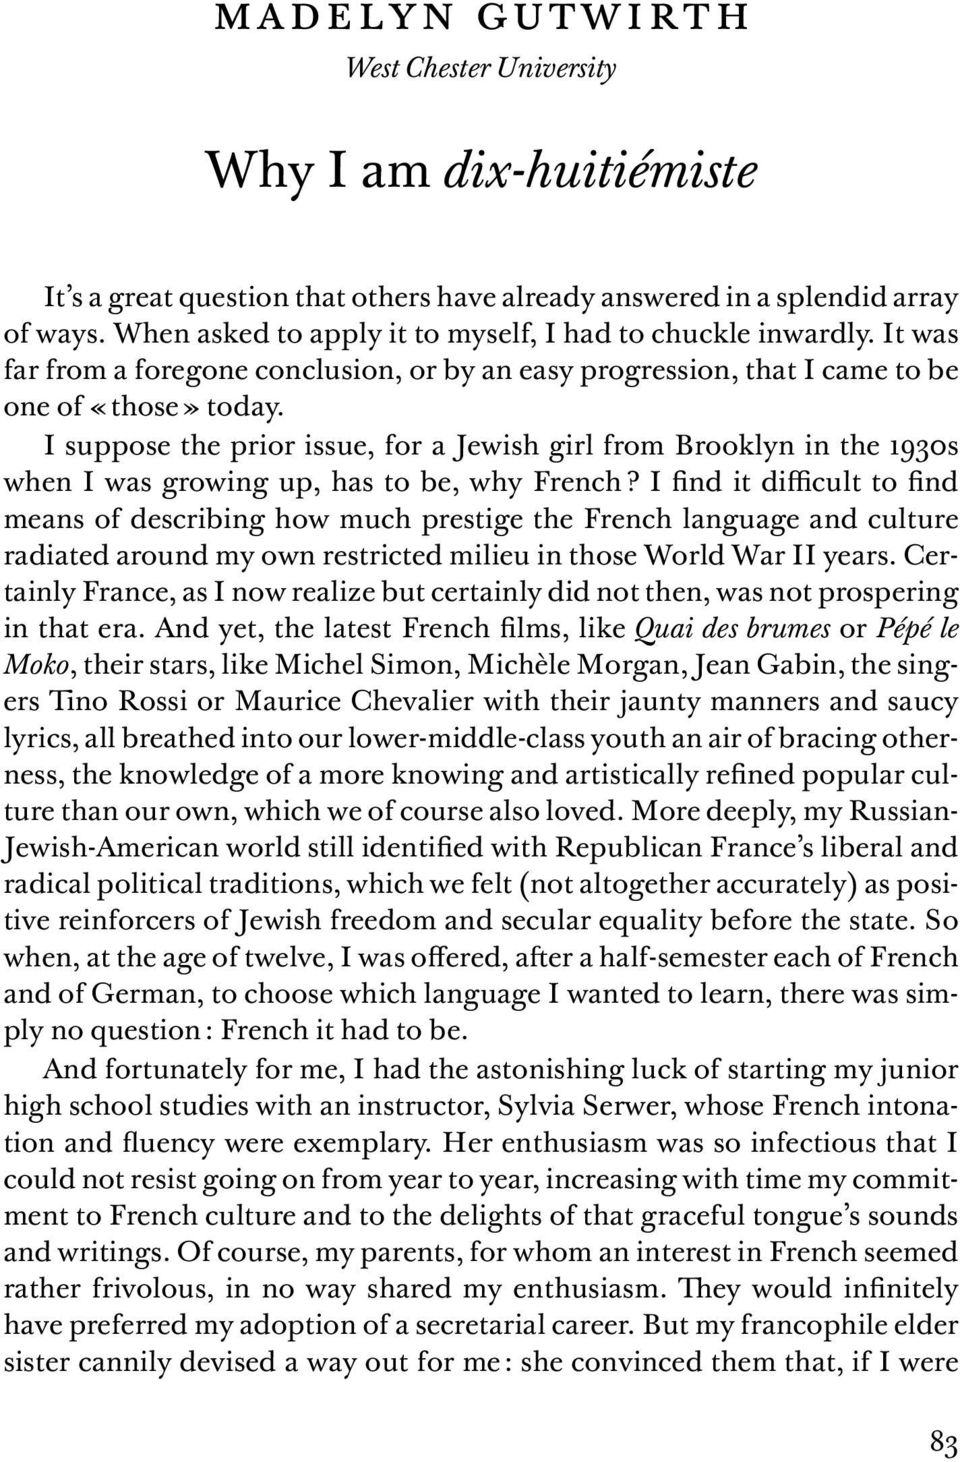 I suppose the prior issue, for a Jewish girl from Brooklyn in the 1930s when I was growing up, has to be, why French?